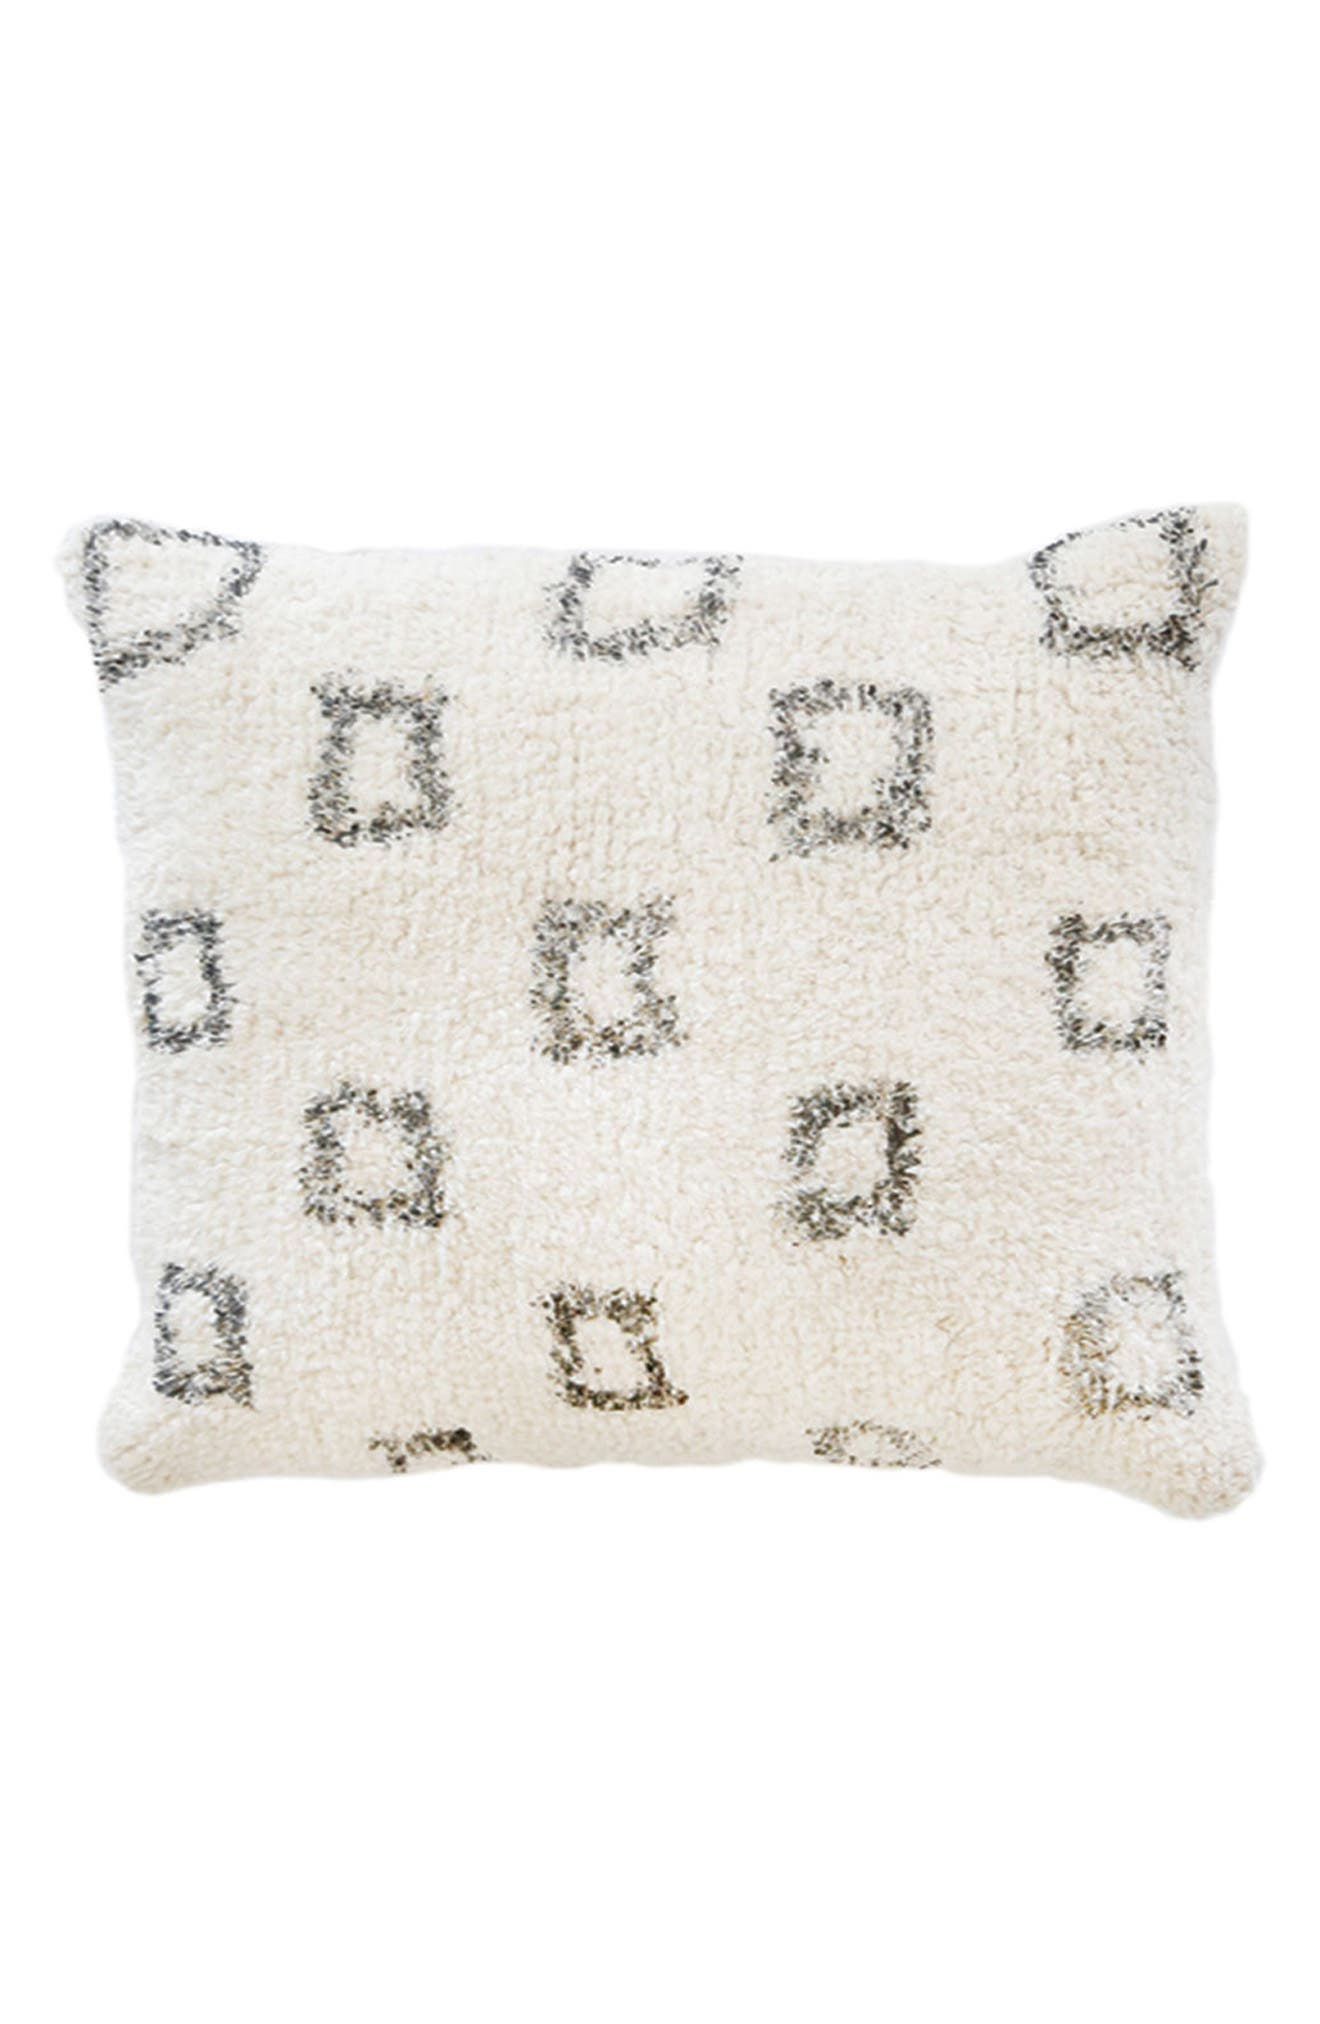 Main Image - Pom Pom at Home Bowie Big Accent Pillow